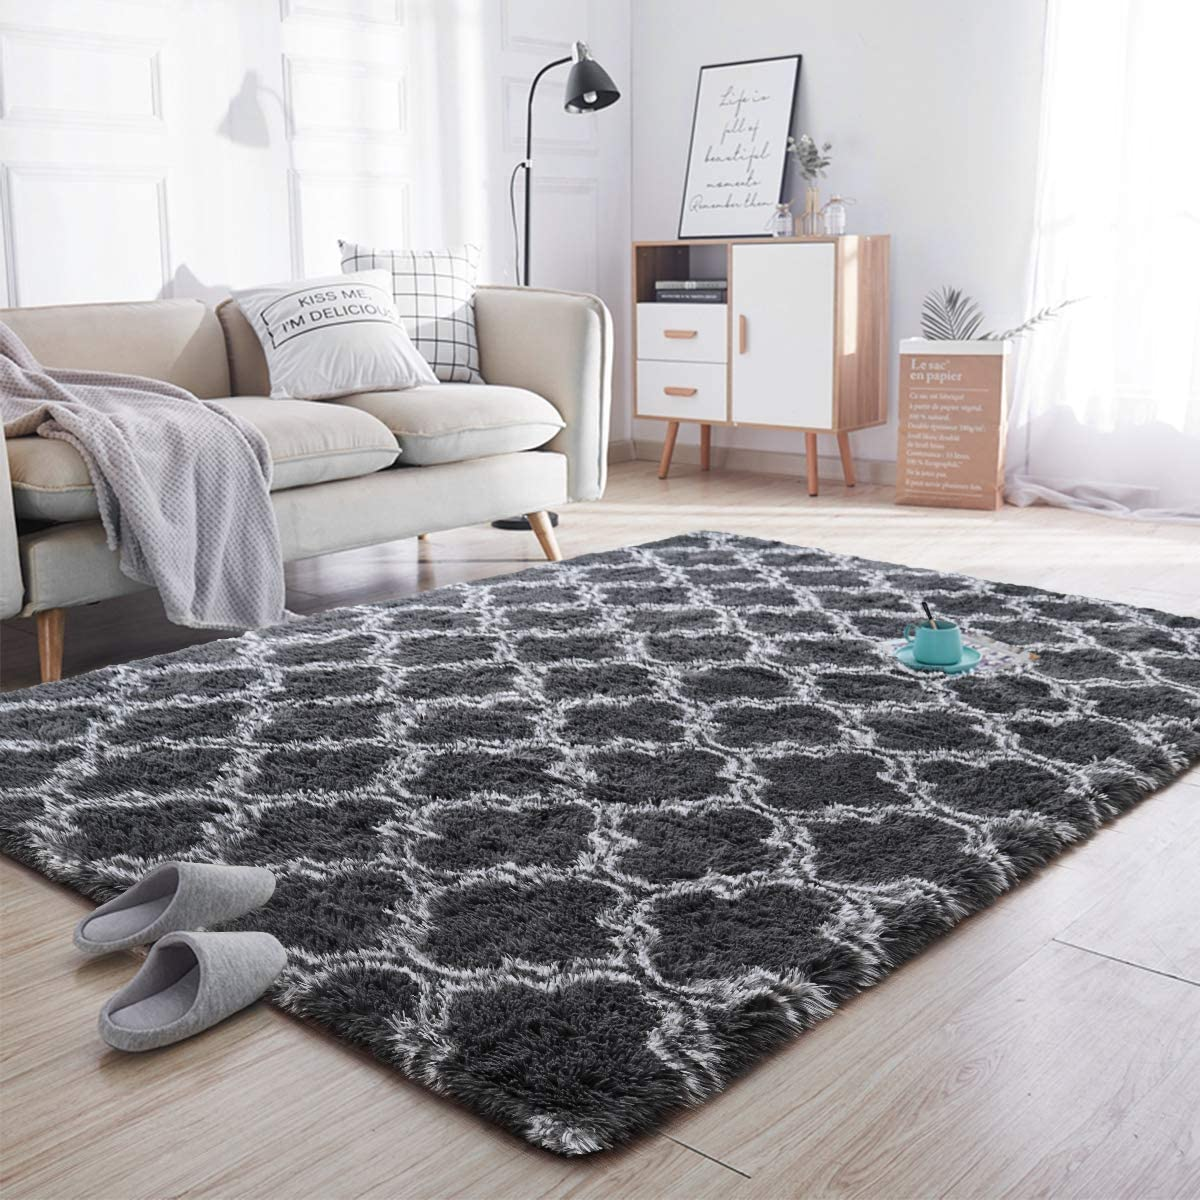 Noahas Soft Area Rugs for Bedroom Living Room Shaggy Patterned Fluffy Carpets for Nursery Baby Rooms Silky Smooth Fuzzy Kids Play Mats Christmas Thanksgiving Holiday Decor Rug, 5ft x 8ft, Ivory Black